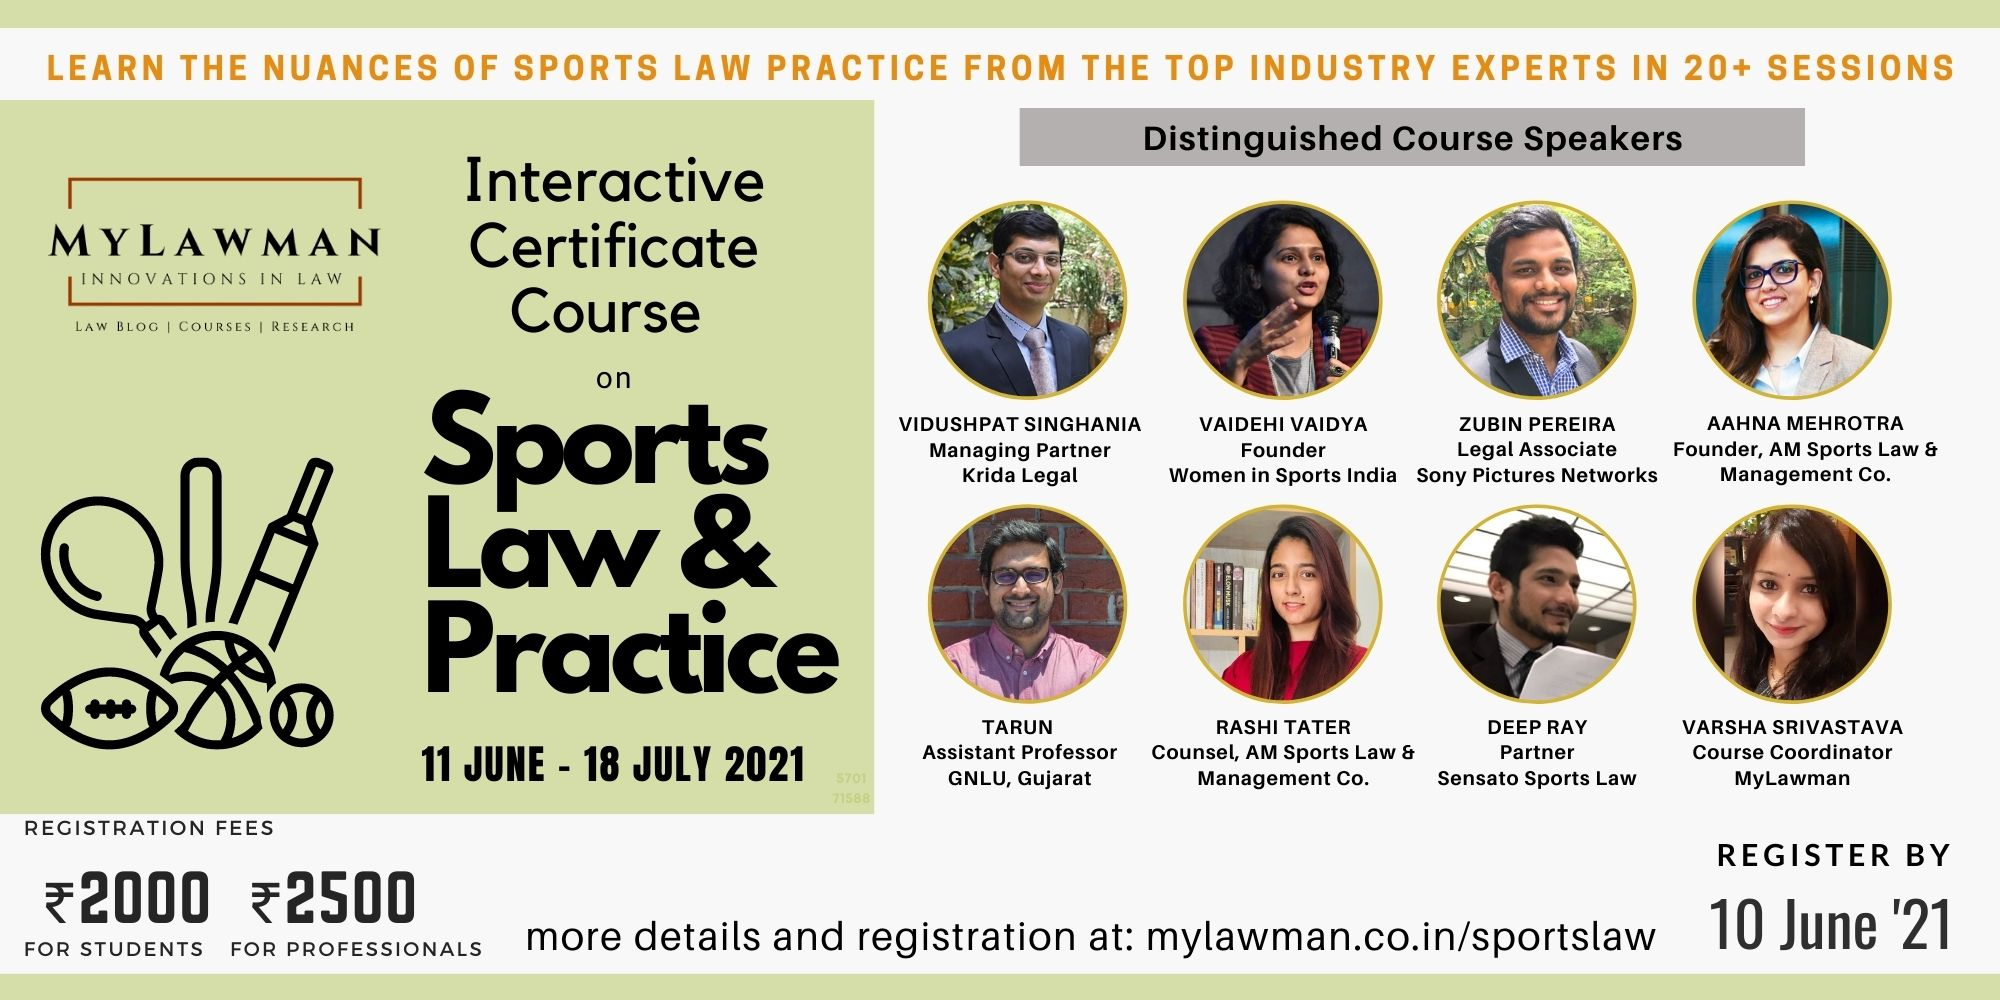 [Online] Interactive Certificate Course on Sports Law & Practice by MyLawman [Register by 10 June]